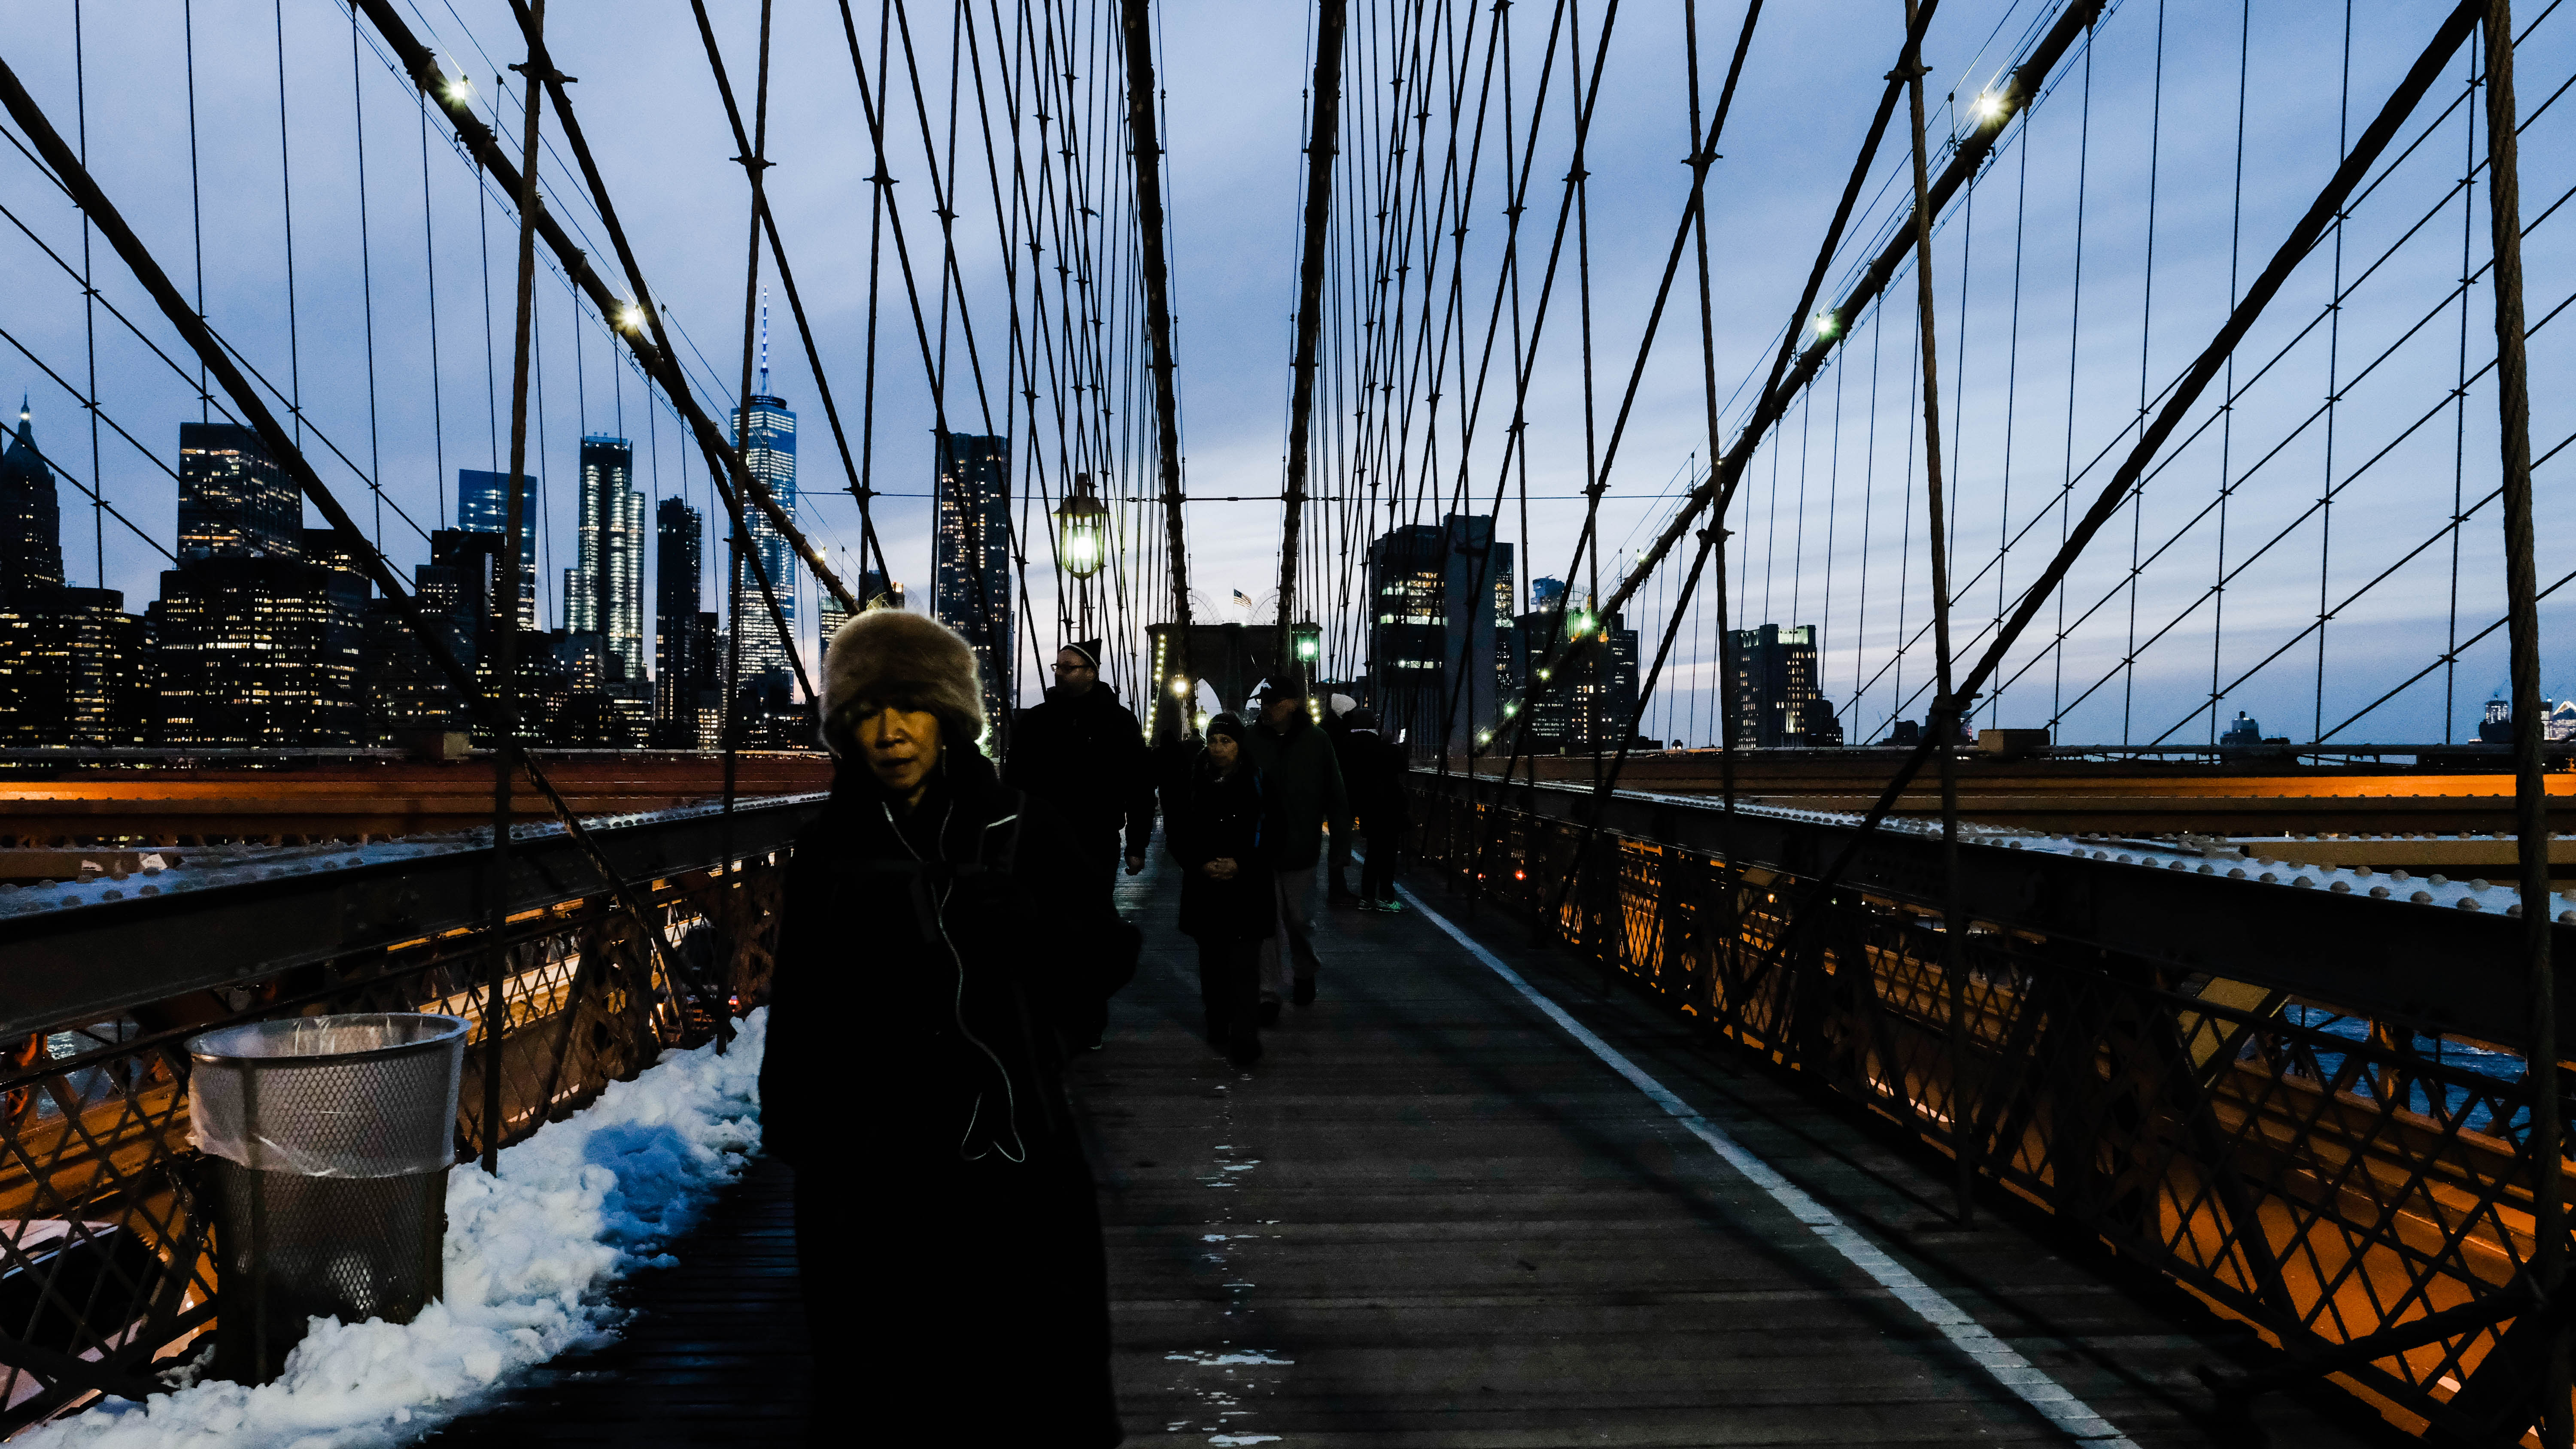 Photography in New York city, New York city, Travel photography, photography of new work, visit New York, New York City, Brooklyn, photography of Brooklyn, street photography of New York, documentary photographer Dublin, Reportage photography